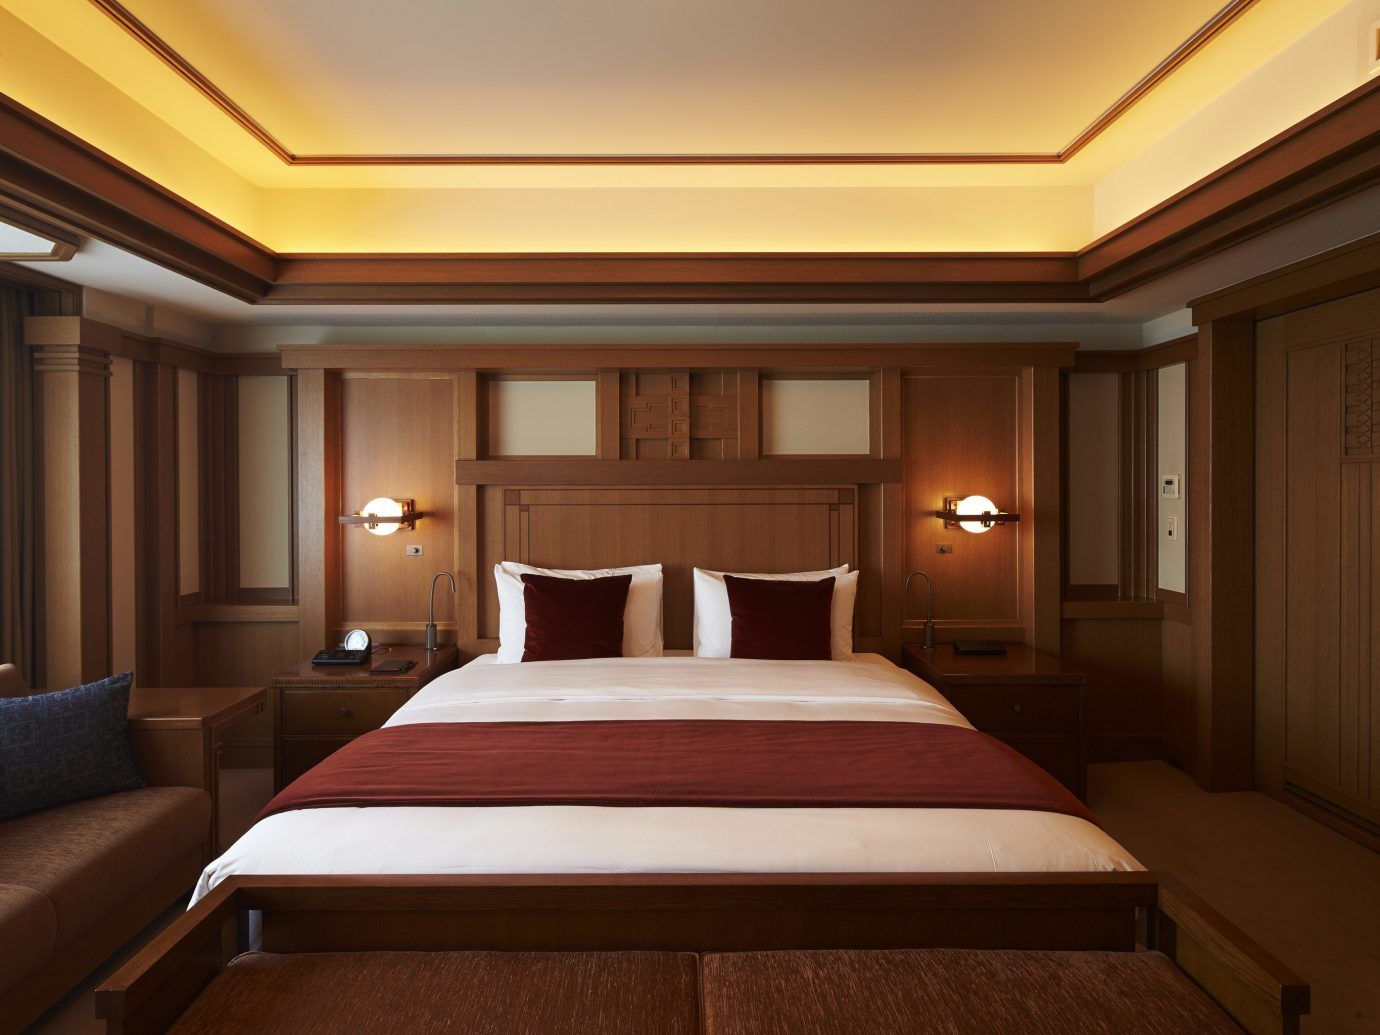 Hotels Japan Tokyo bed wall indoor ceiling room floor Bedroom hotel Suite interior design estate yacht billiard room recreation room conference hall